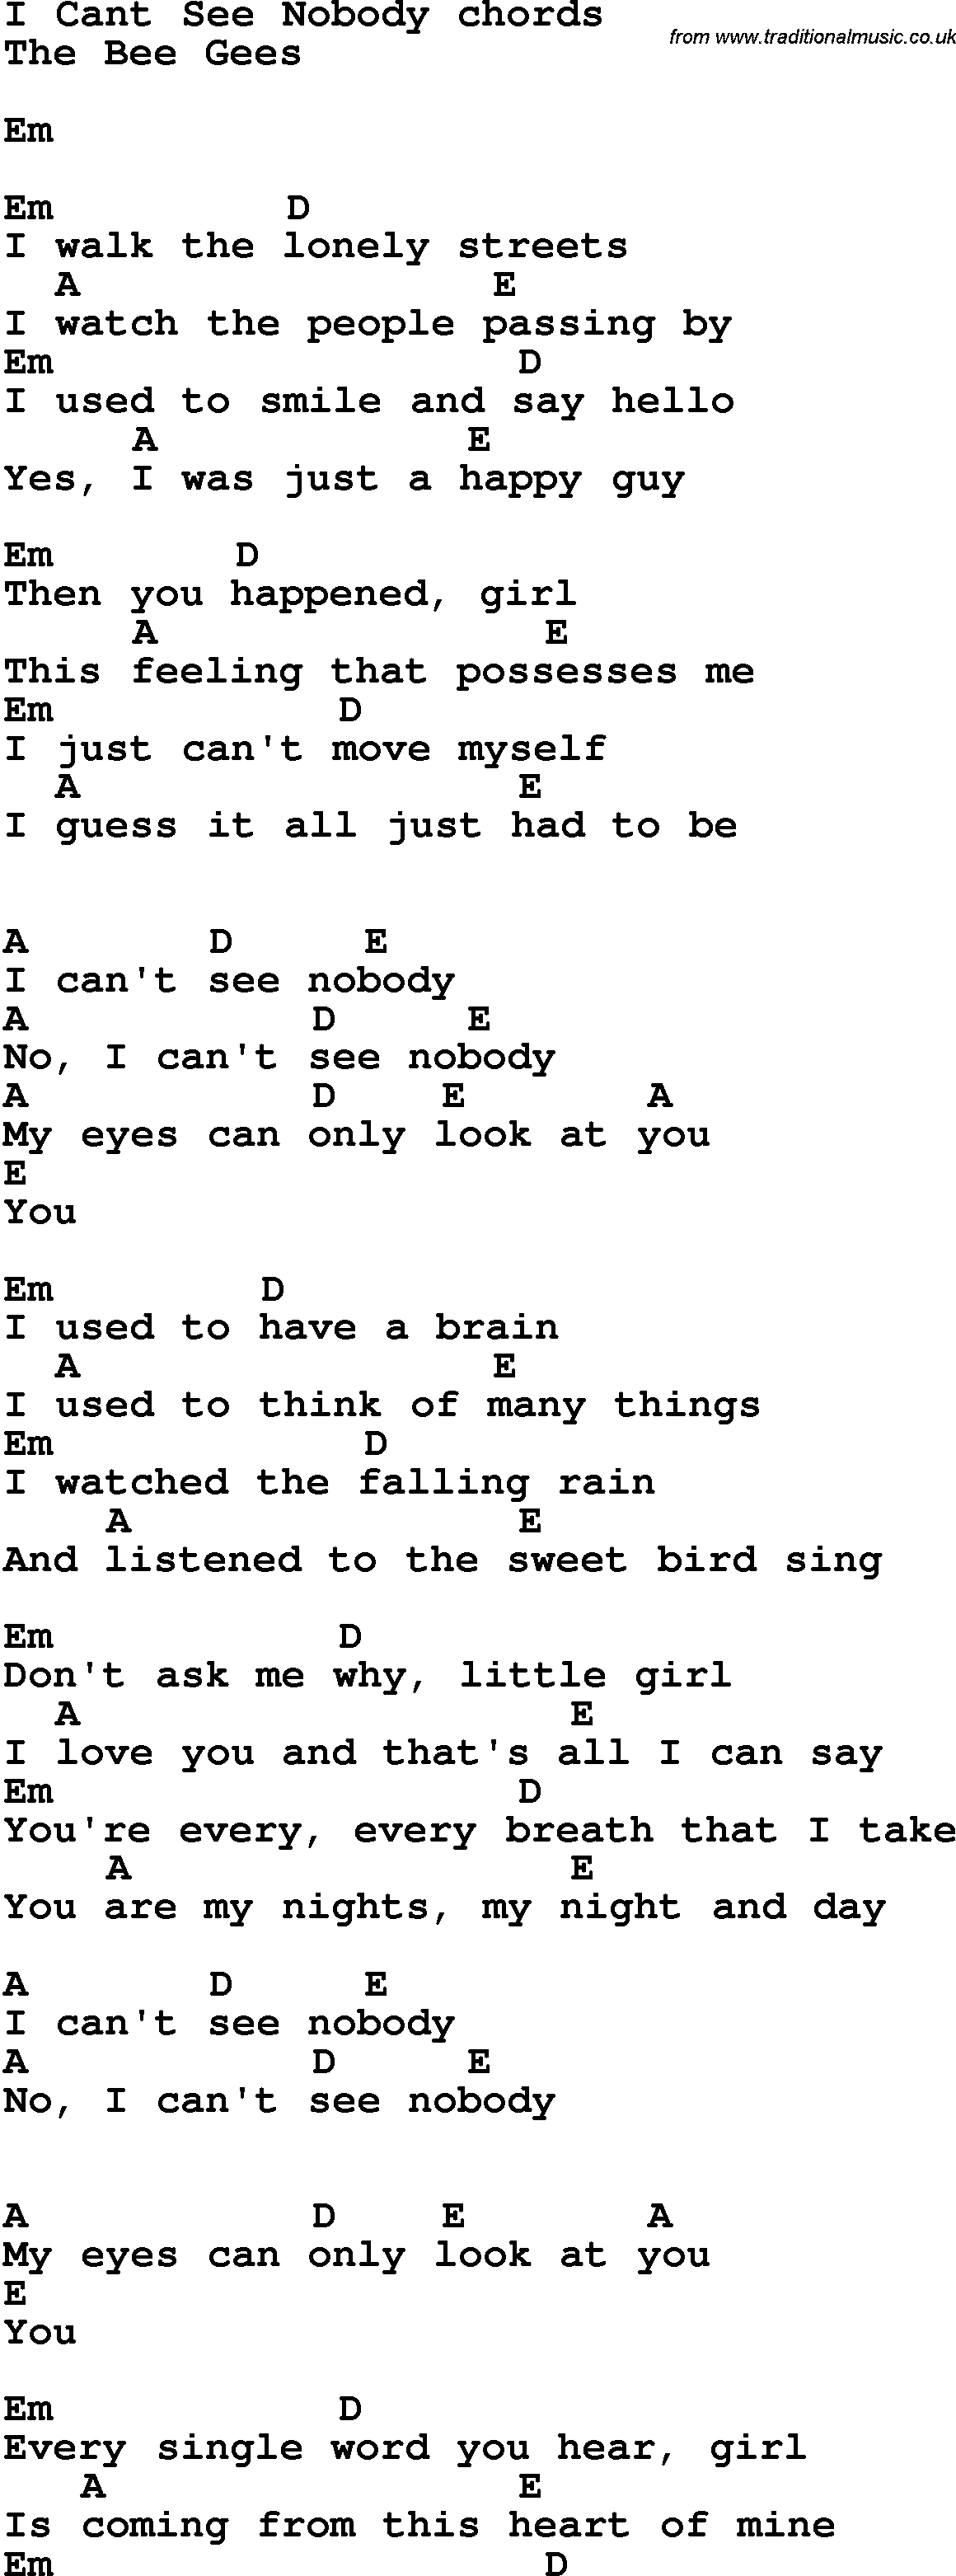 Song Lyrics With Guitar Chords For I Can T See Nobody Lyrics © bmg rights management, songtrust ave, peermusic publishing, kobalt music publishing ltd. traditional music library